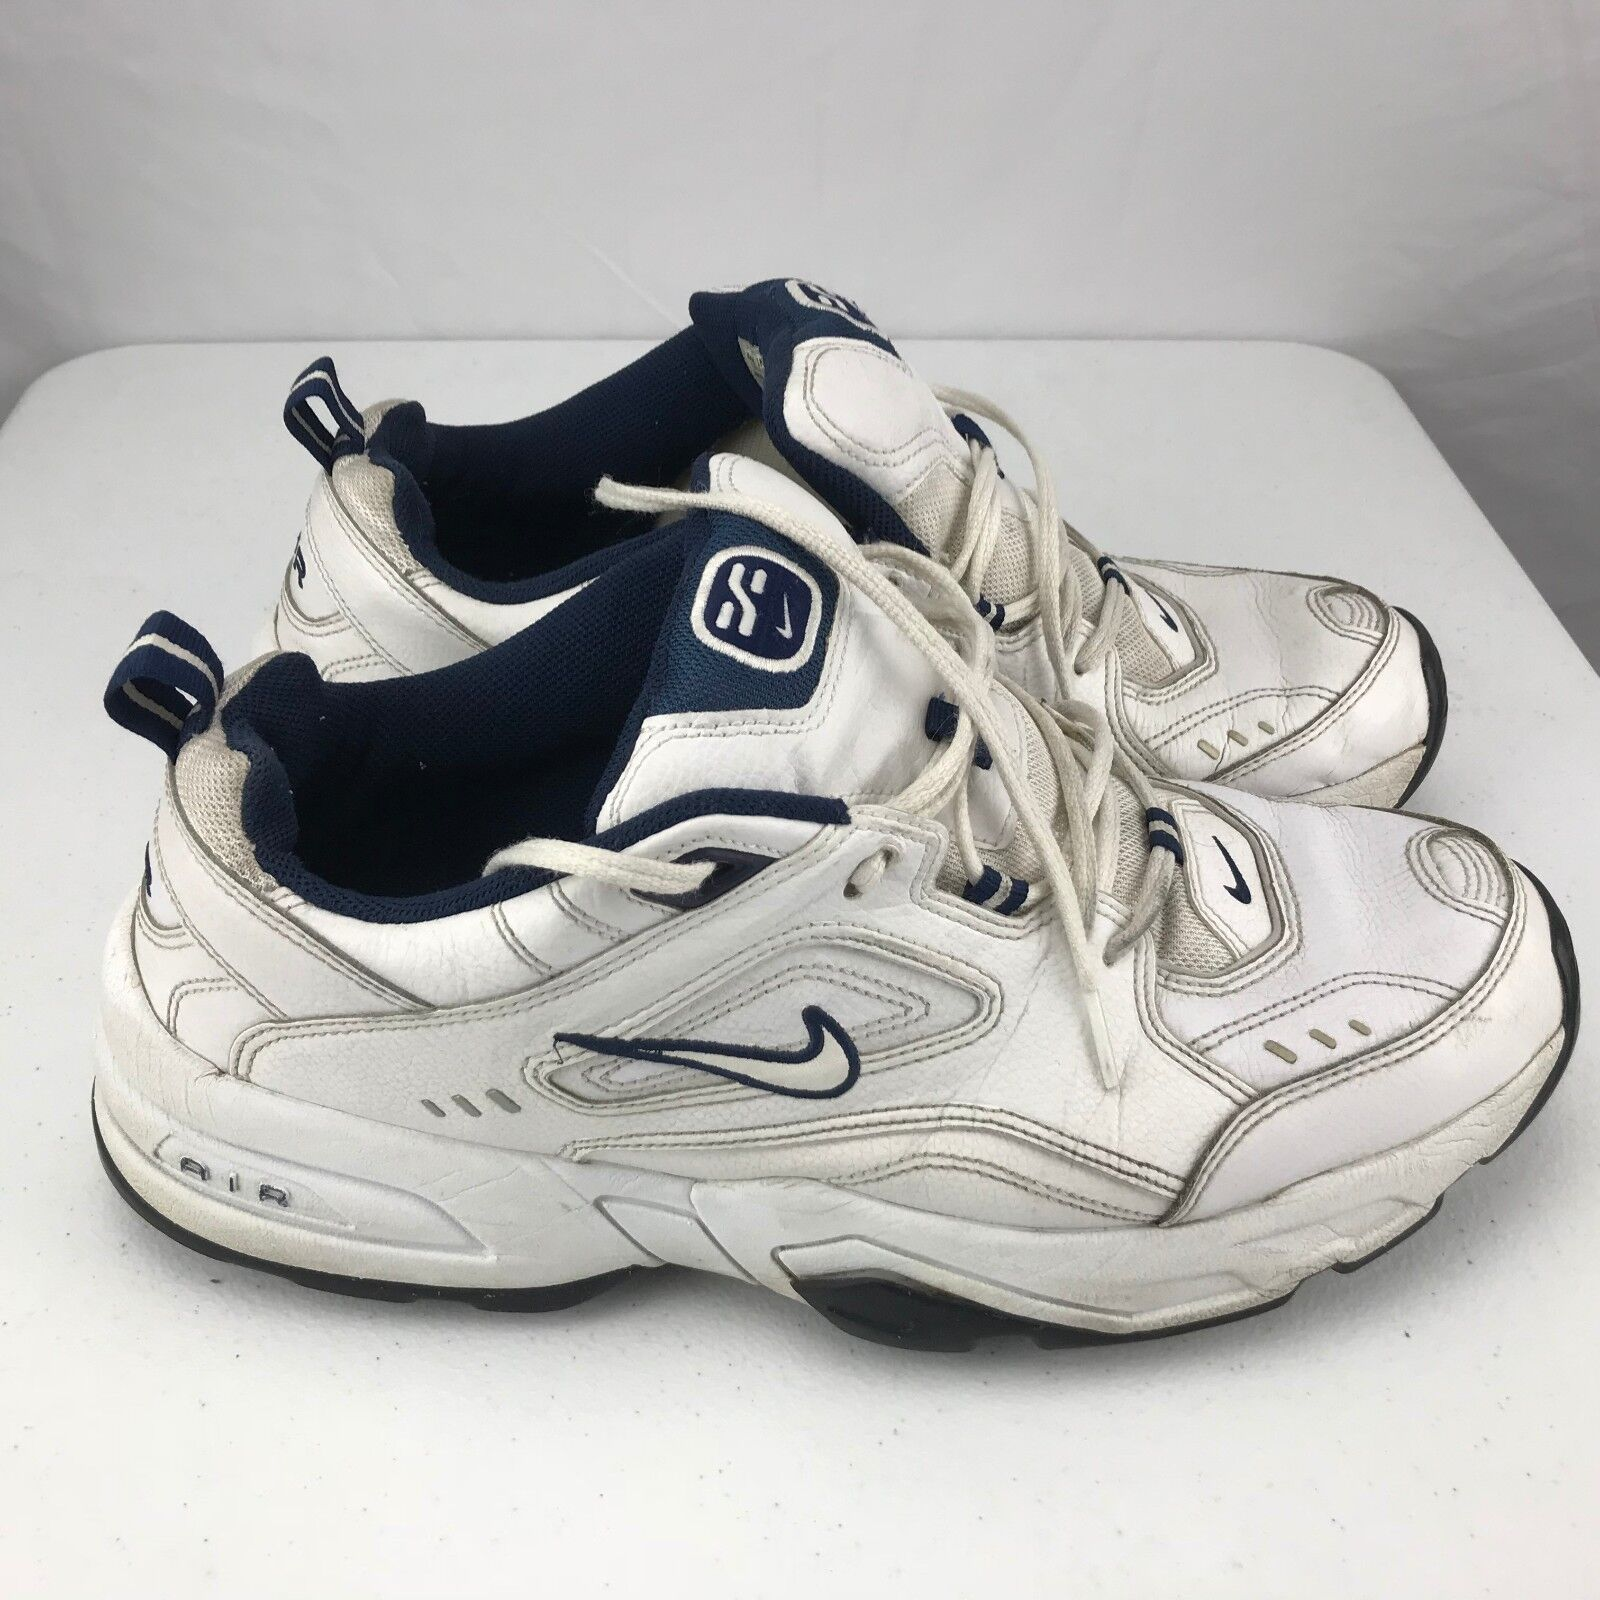 Mens Nike Air Comfort 2 Comfortable New shoes for men and women, limited time discount